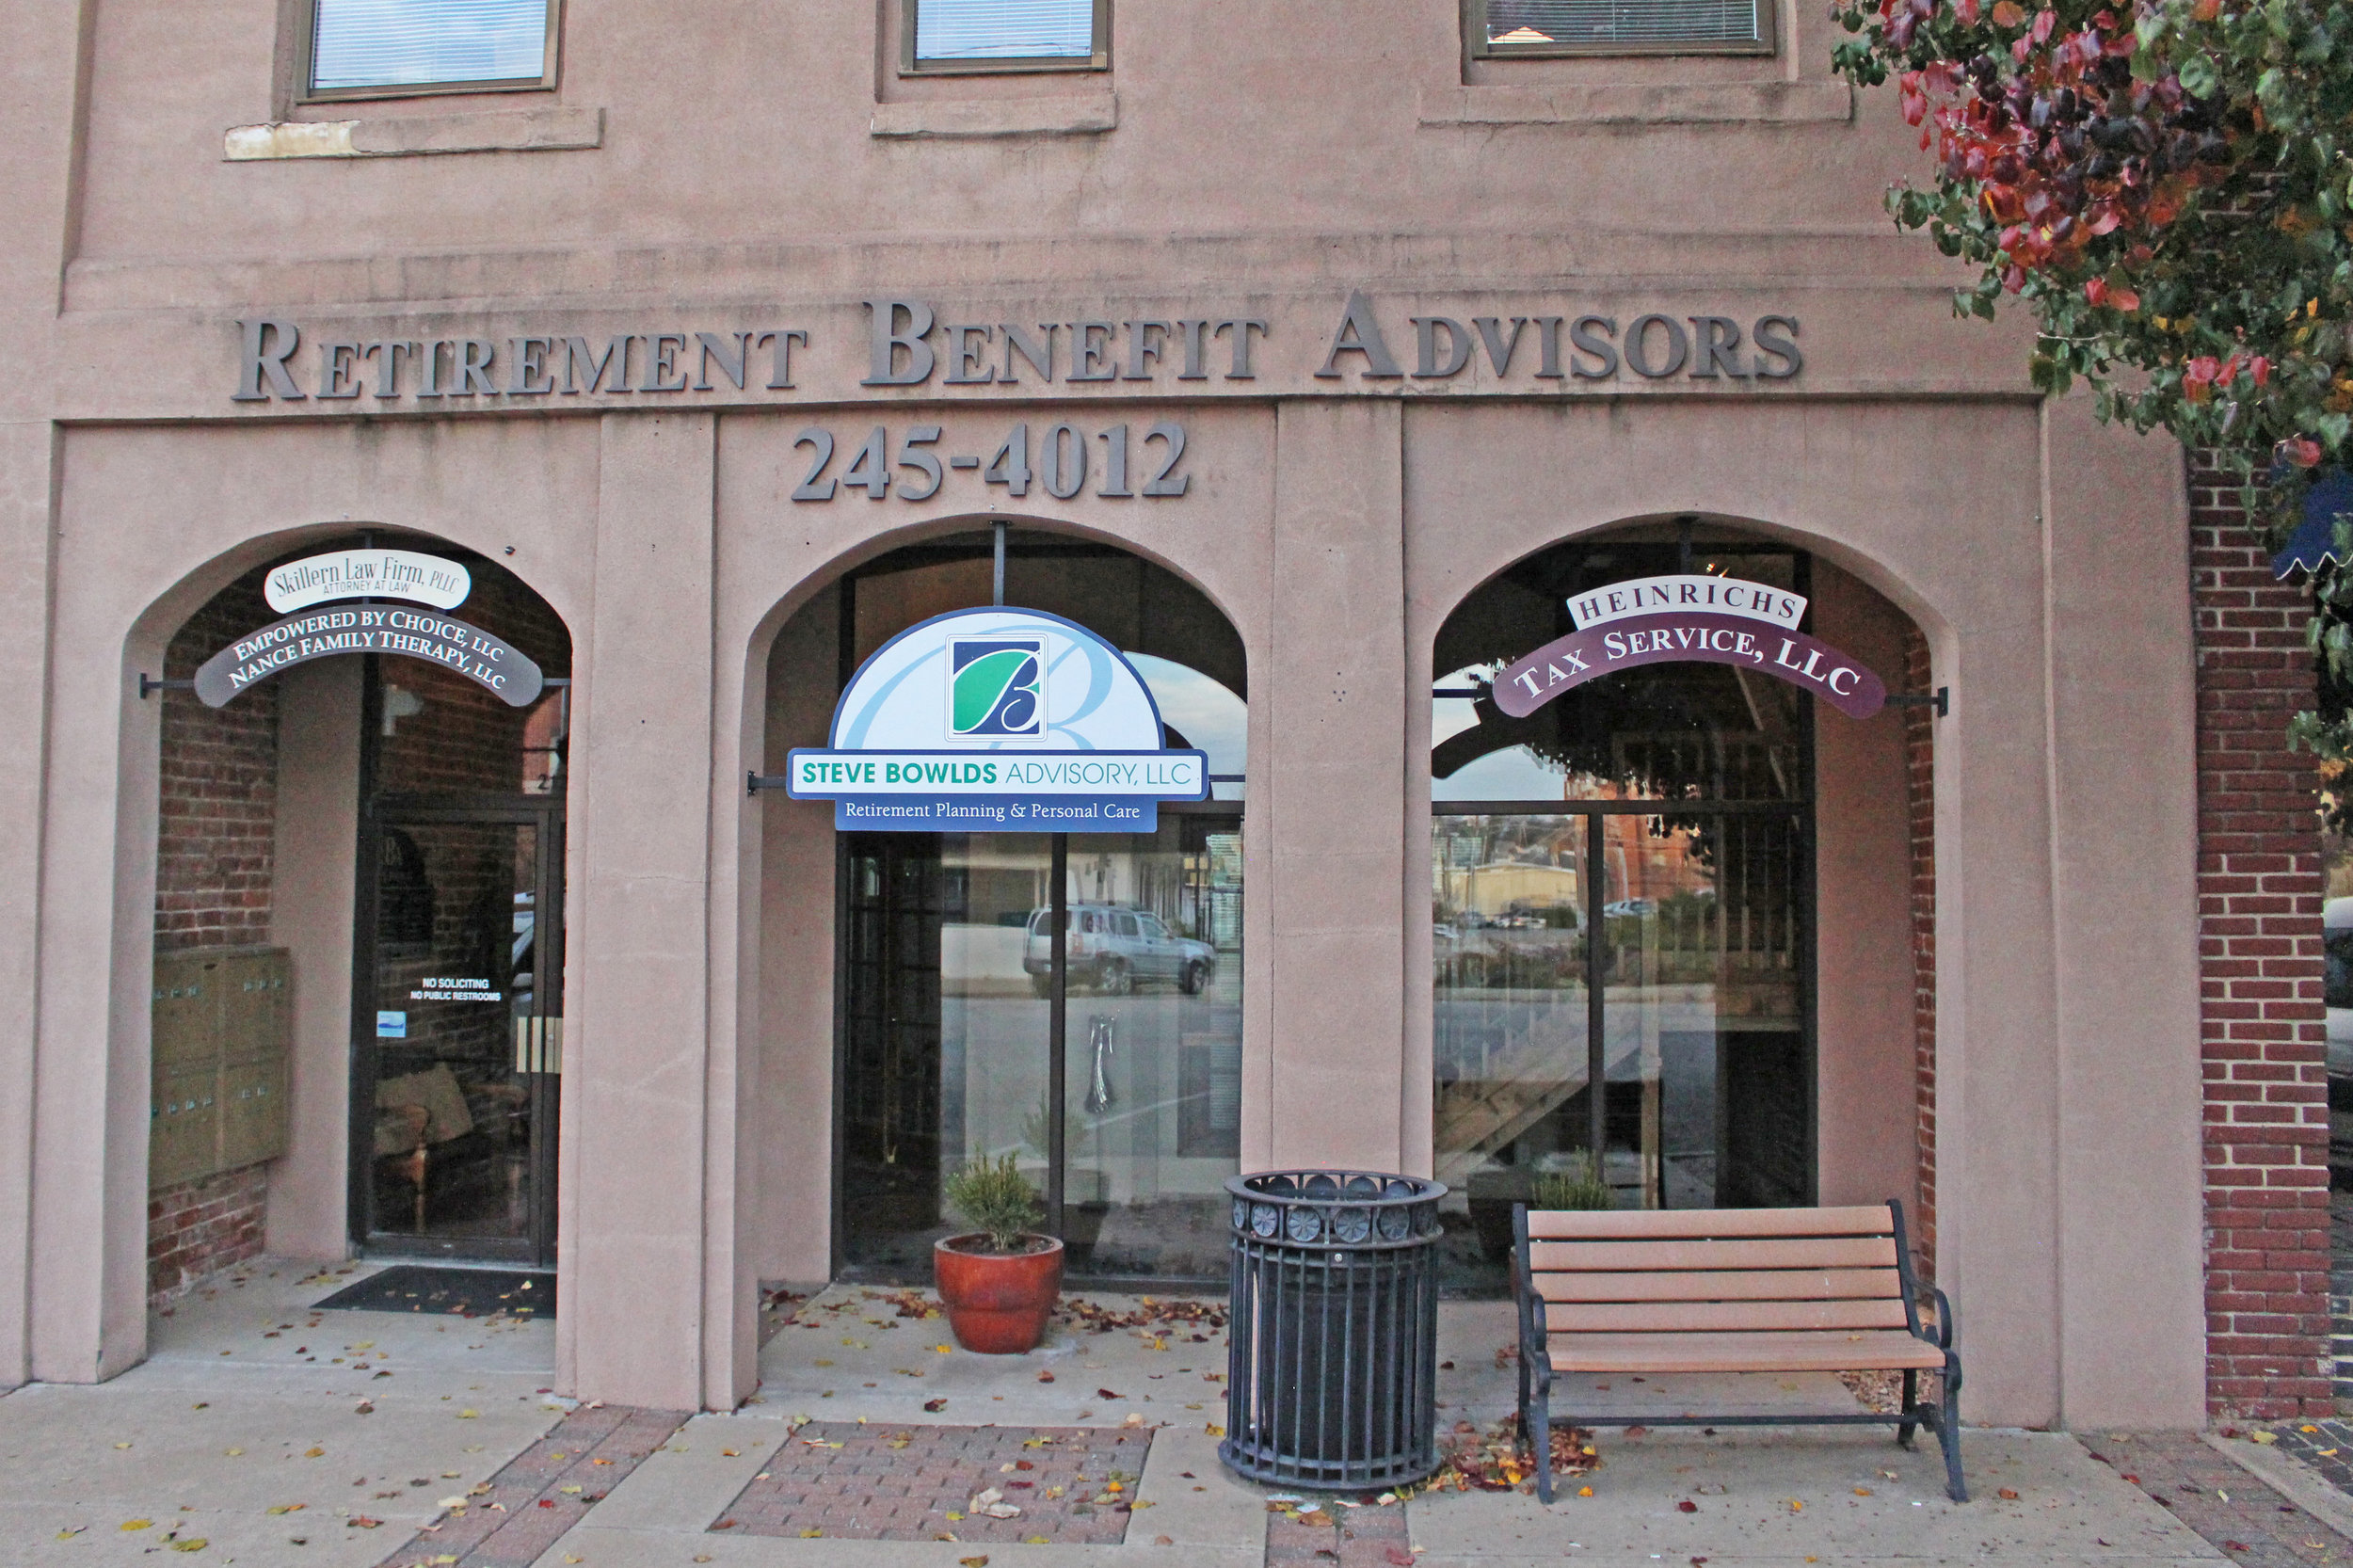 retirement benefit advisors - downtown 212 north main street, suite 201